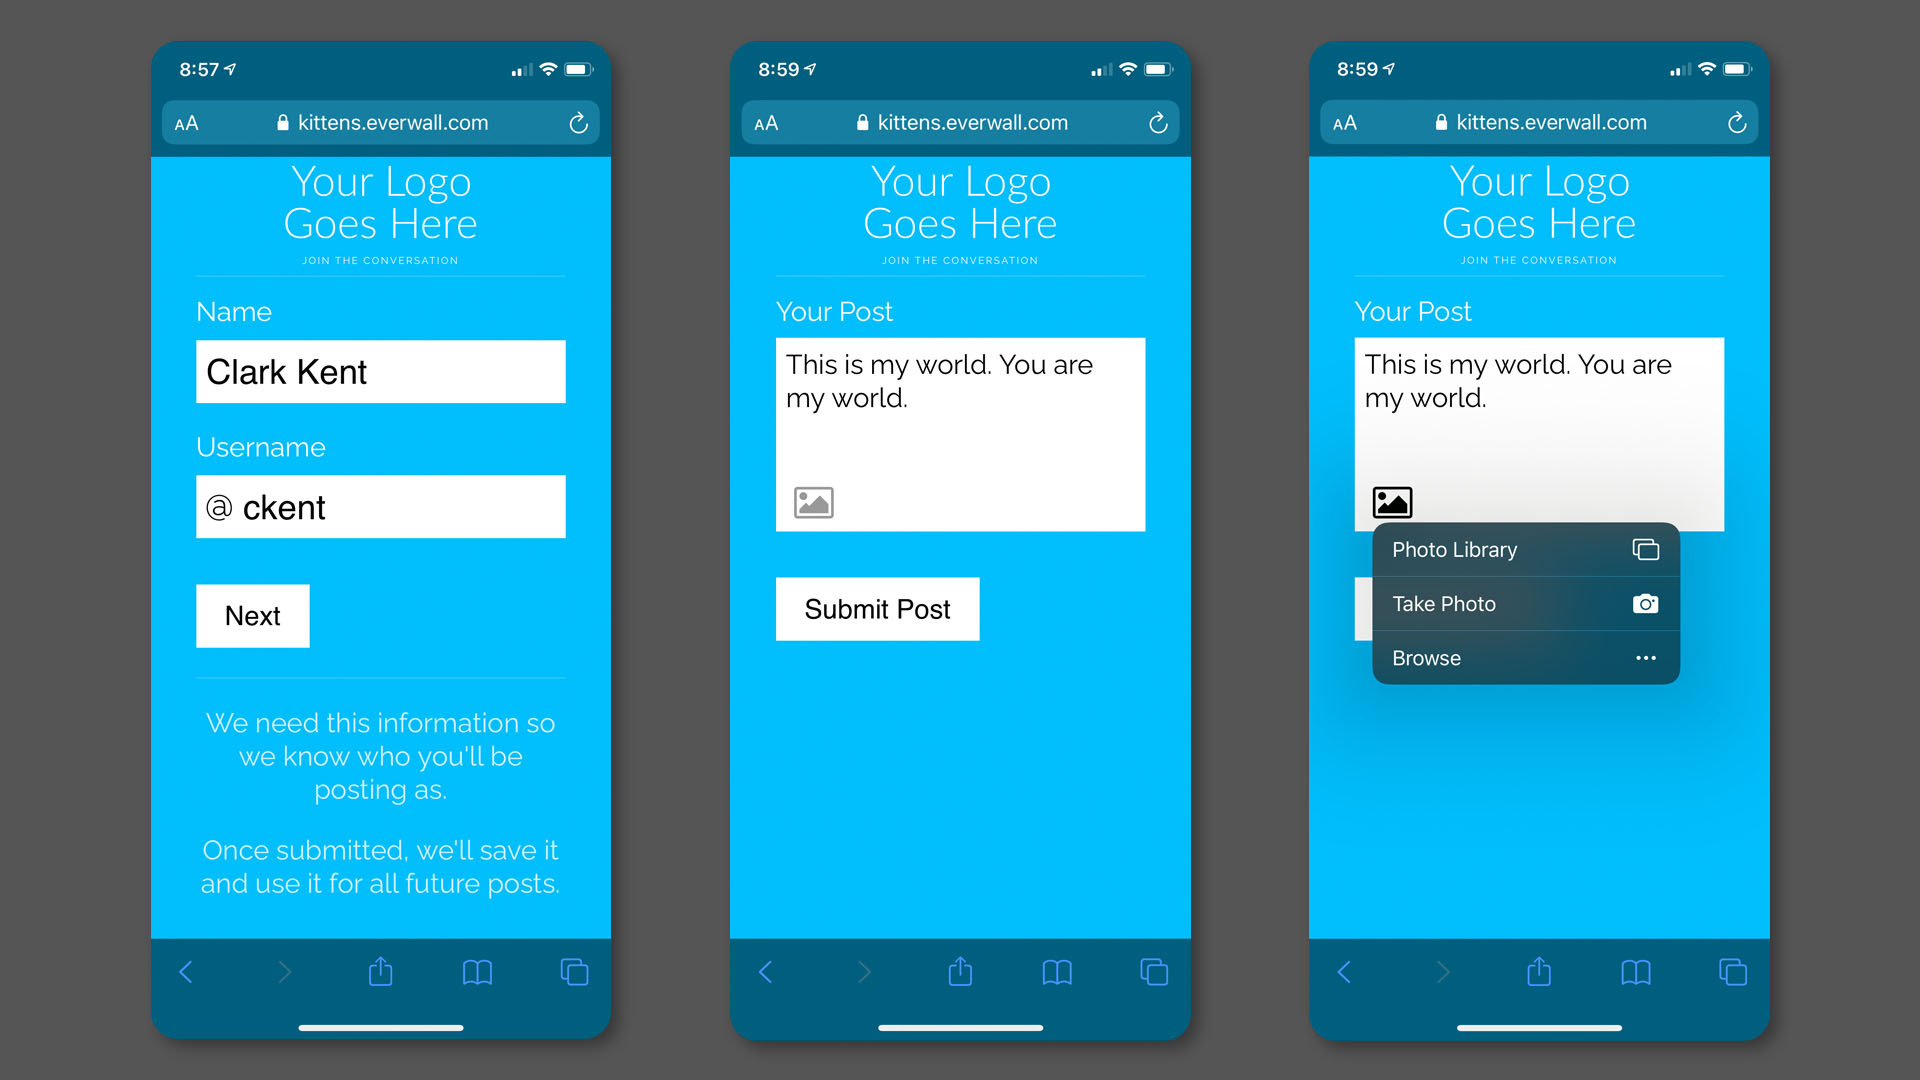 Multiple Screens showing Web Forms on an iPhone